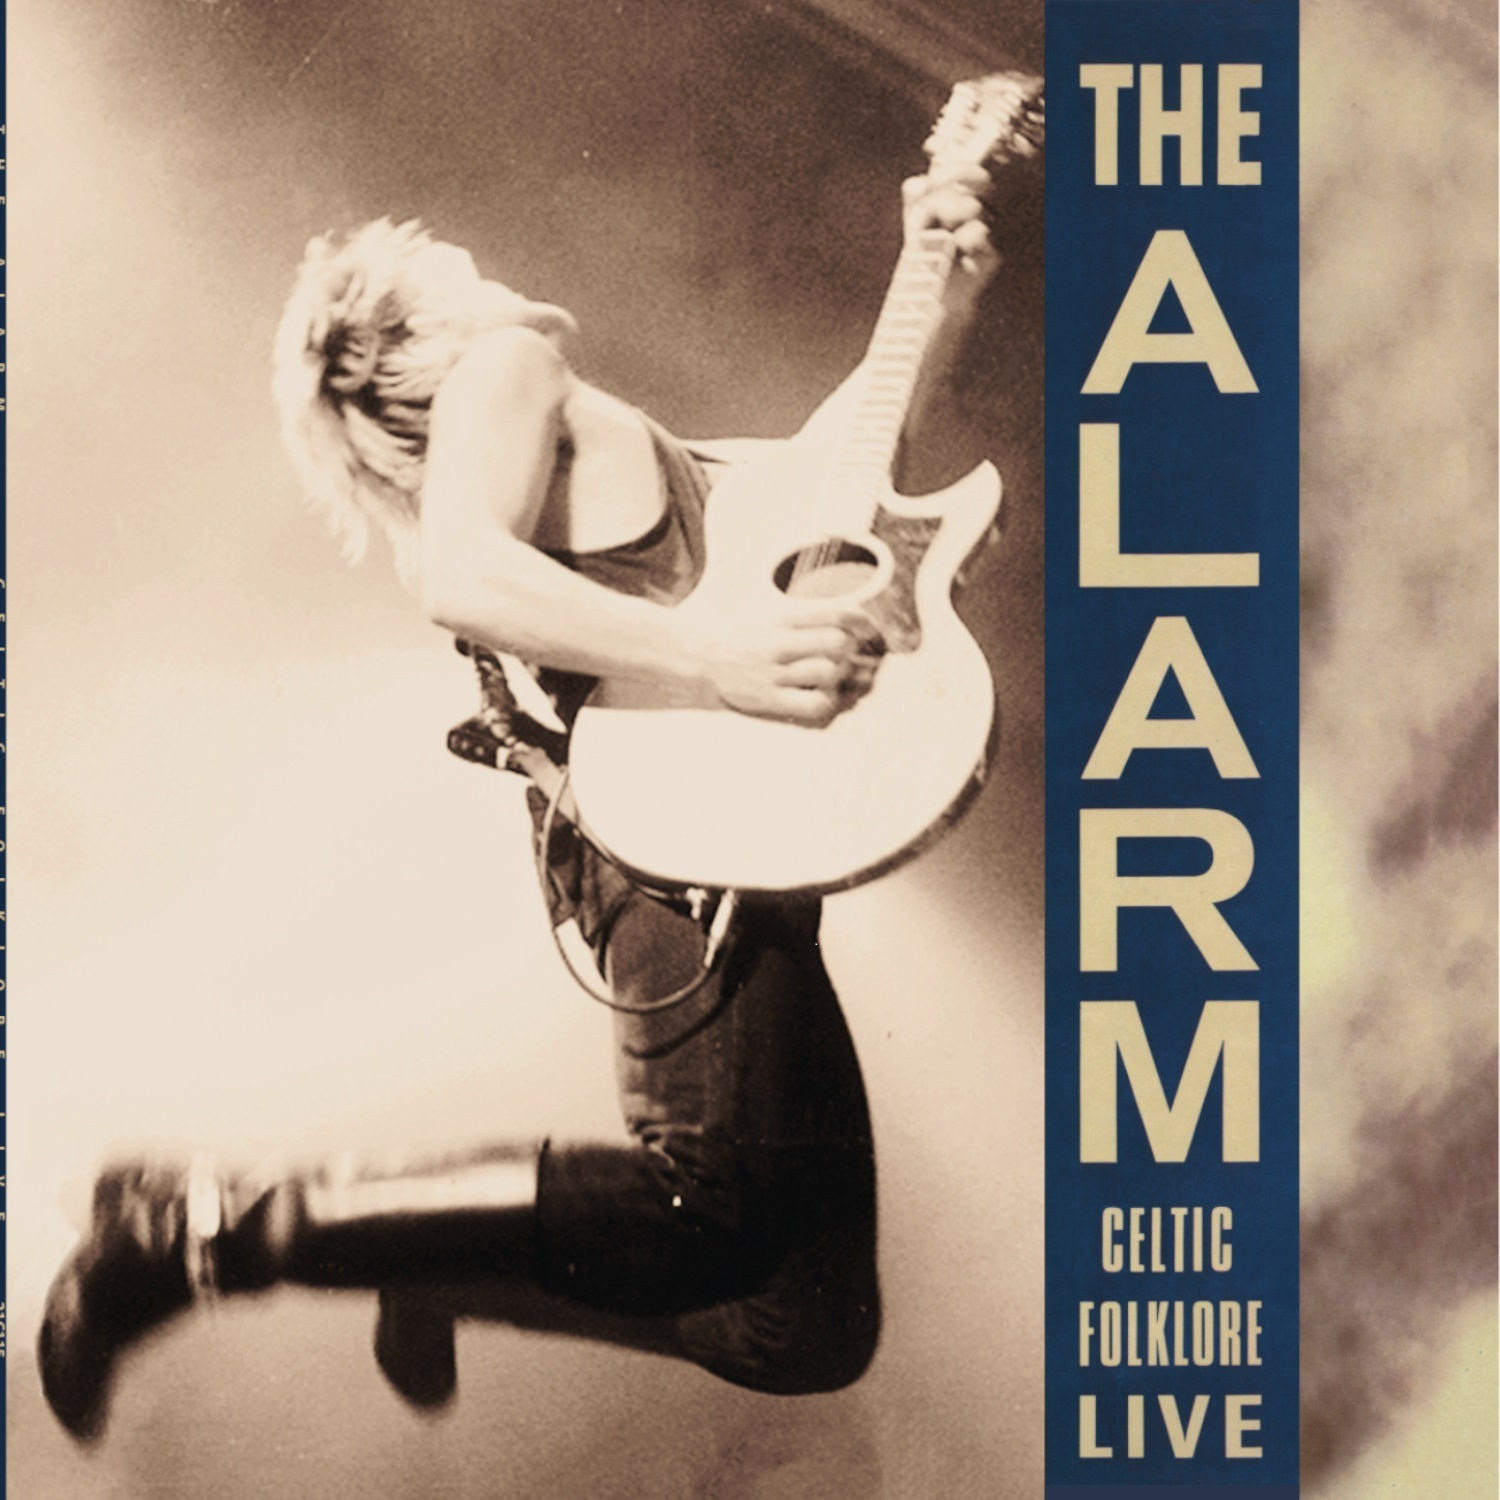 The Alarm - Celtic Folklore Live [RSD Drops Sep 2020]